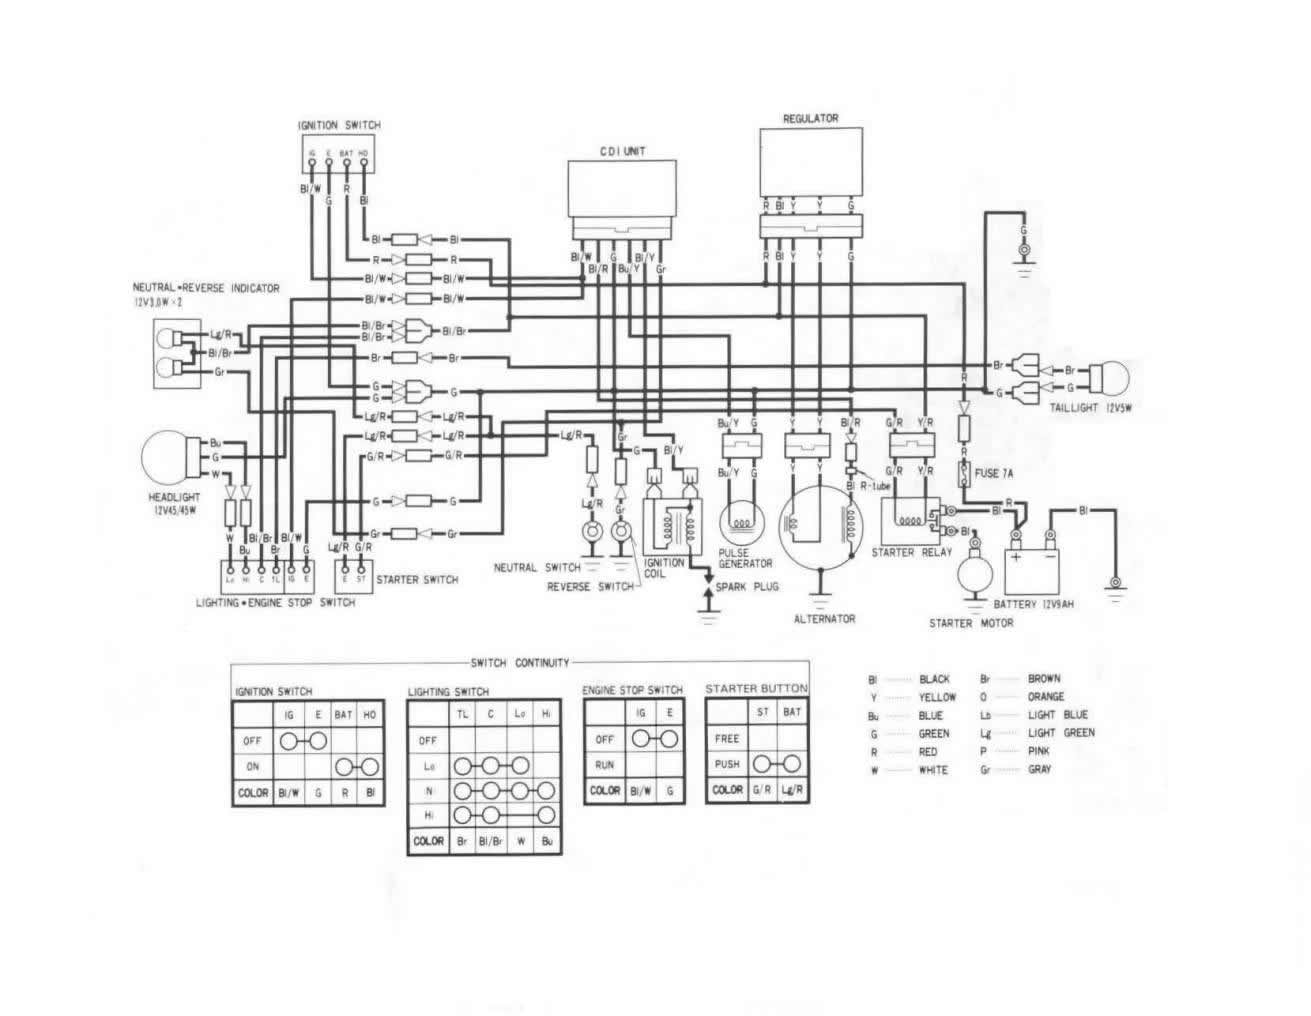 DIAGRAM] Honda 350 Rancher Wiring Diagram FULL Version HD Quality Wiring  Diagram - DIAGRAMMEDIA.LADEPOSIZIONEMISTERI.IT | 2005 Honda Rancher Es Wiring Diagram |  | La Deposizione